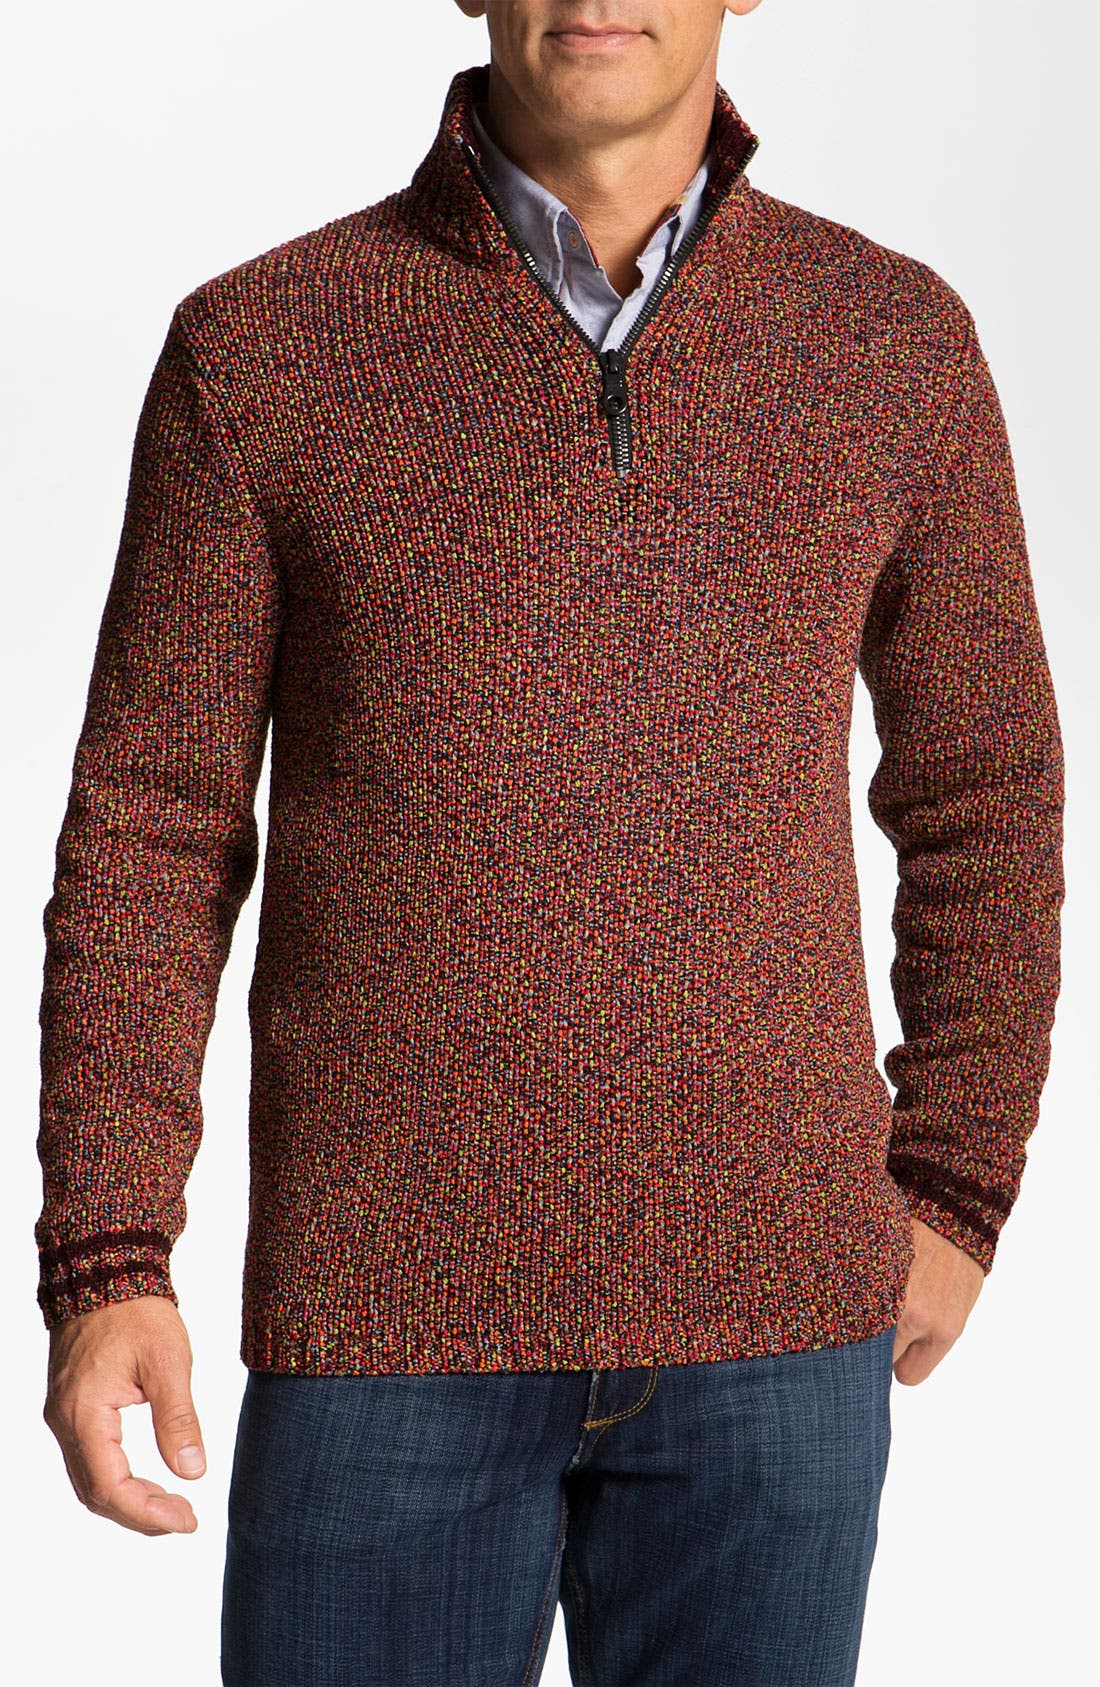 Main Image - Robert Graham 'Hastings' Quarter-Zip Sweater (Limited Edition)